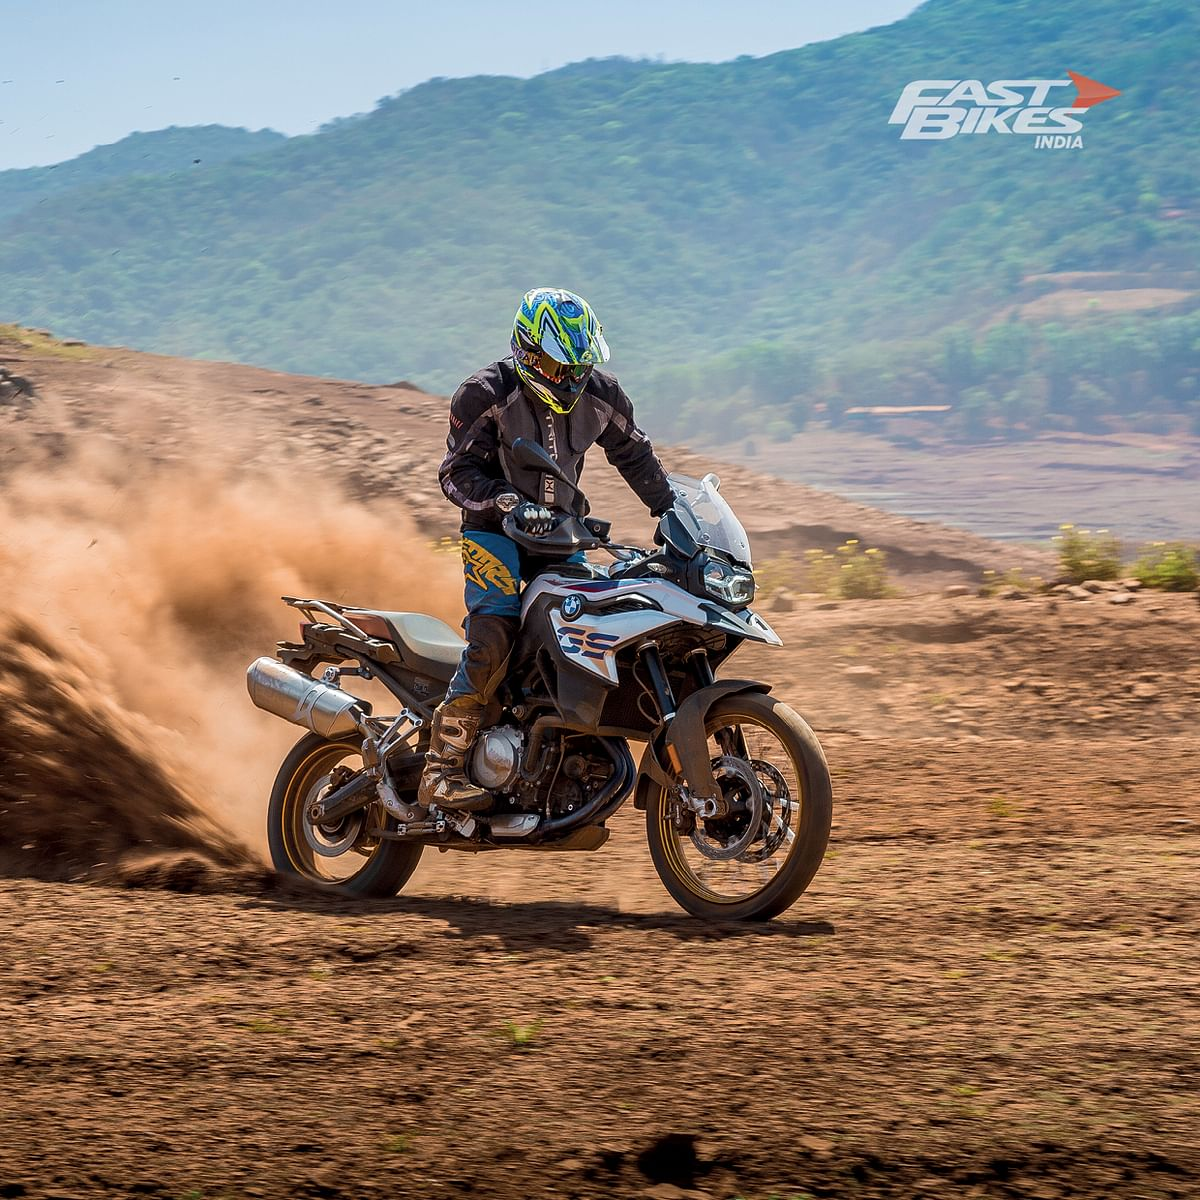 Vijay Parmar column – Just get out and ride!